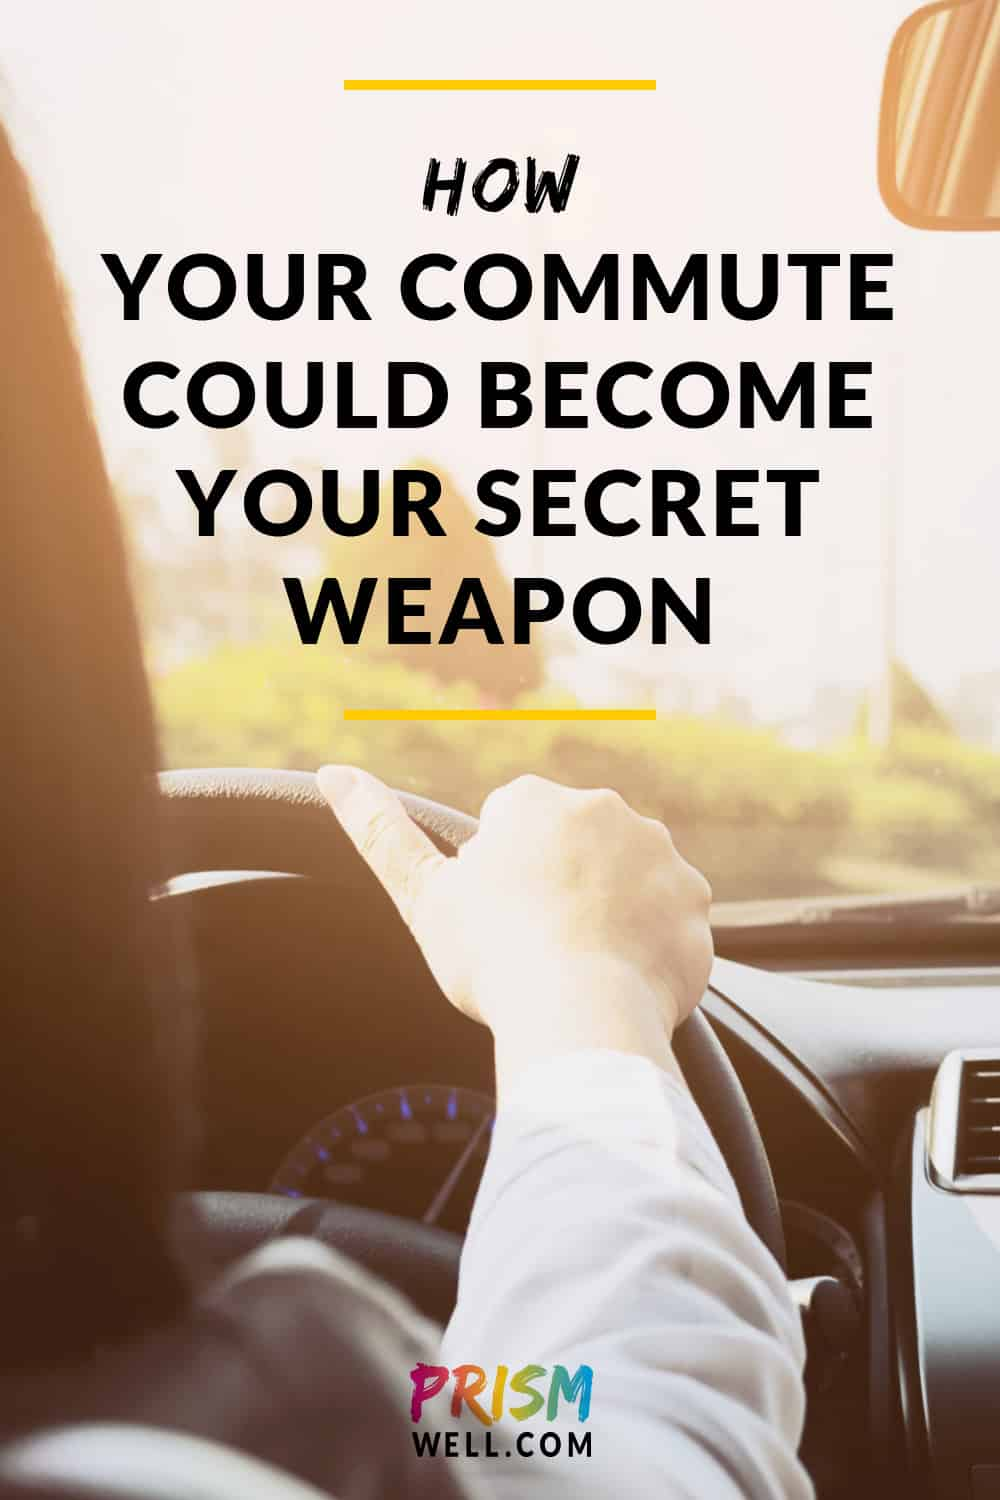 How to take back your tedious commute and turn it into an opportunity to transform your life - something you might even look forward to!